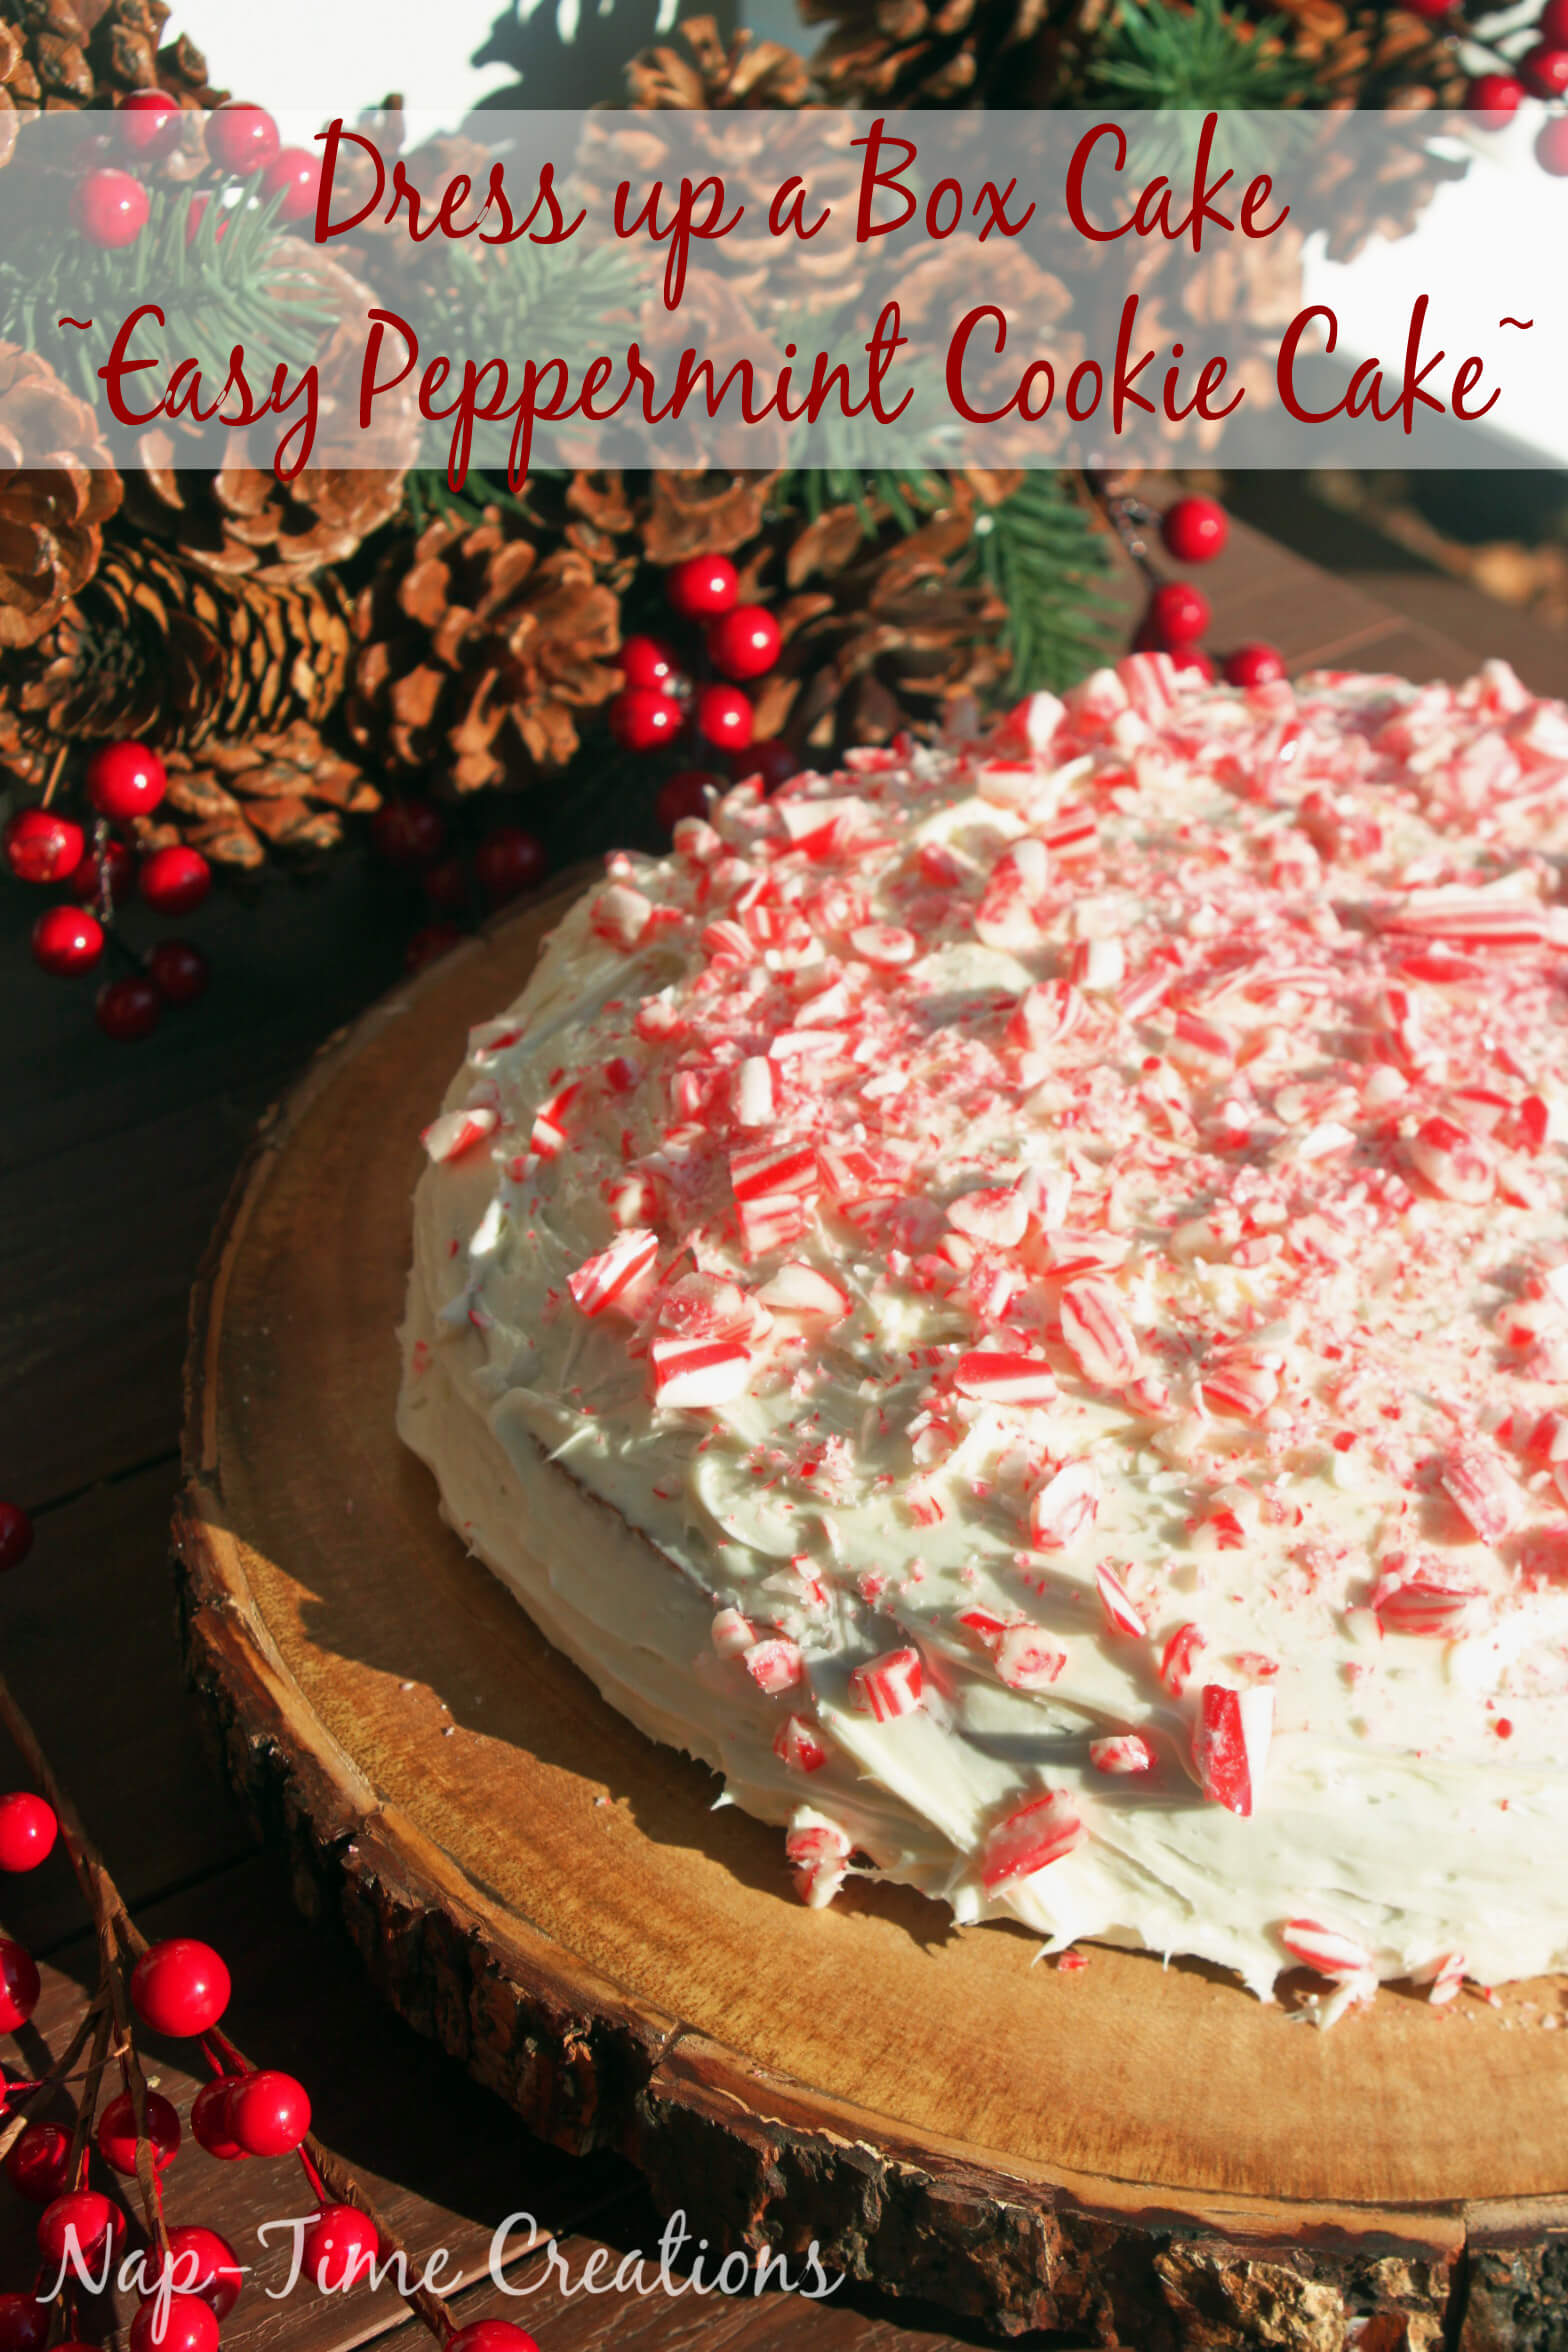 Peppermint Cookie Cake How To - Dress up a box cake from Nap-Time Creations #TheDessertDebate {ad}